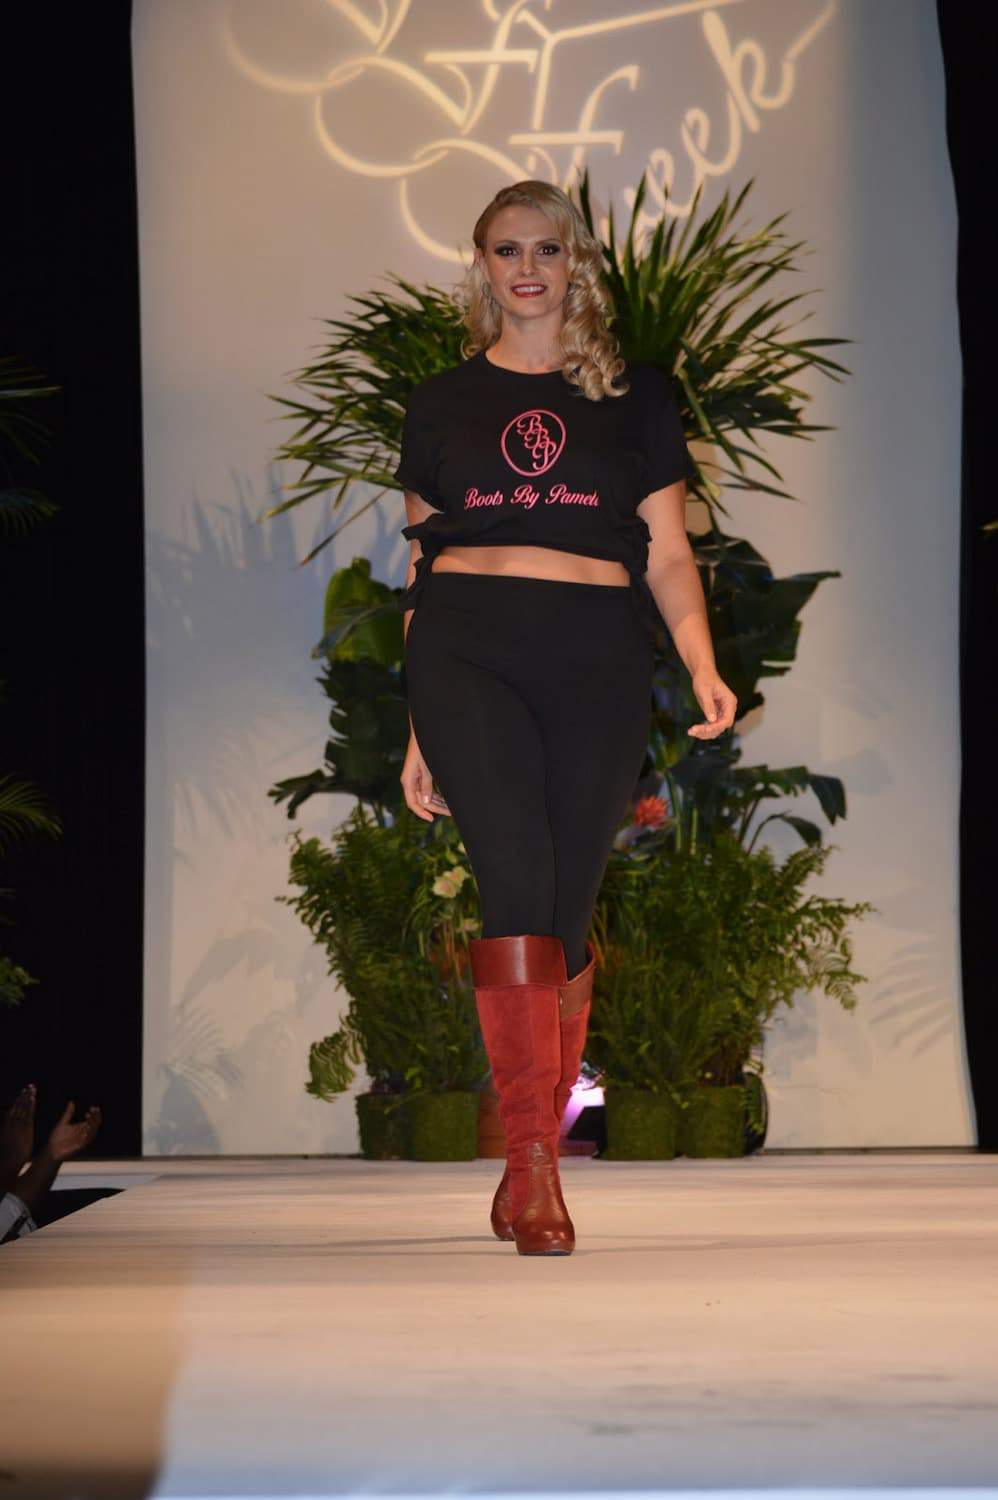 Boots by Pamela at Full Figured Fashion Week 2015 8